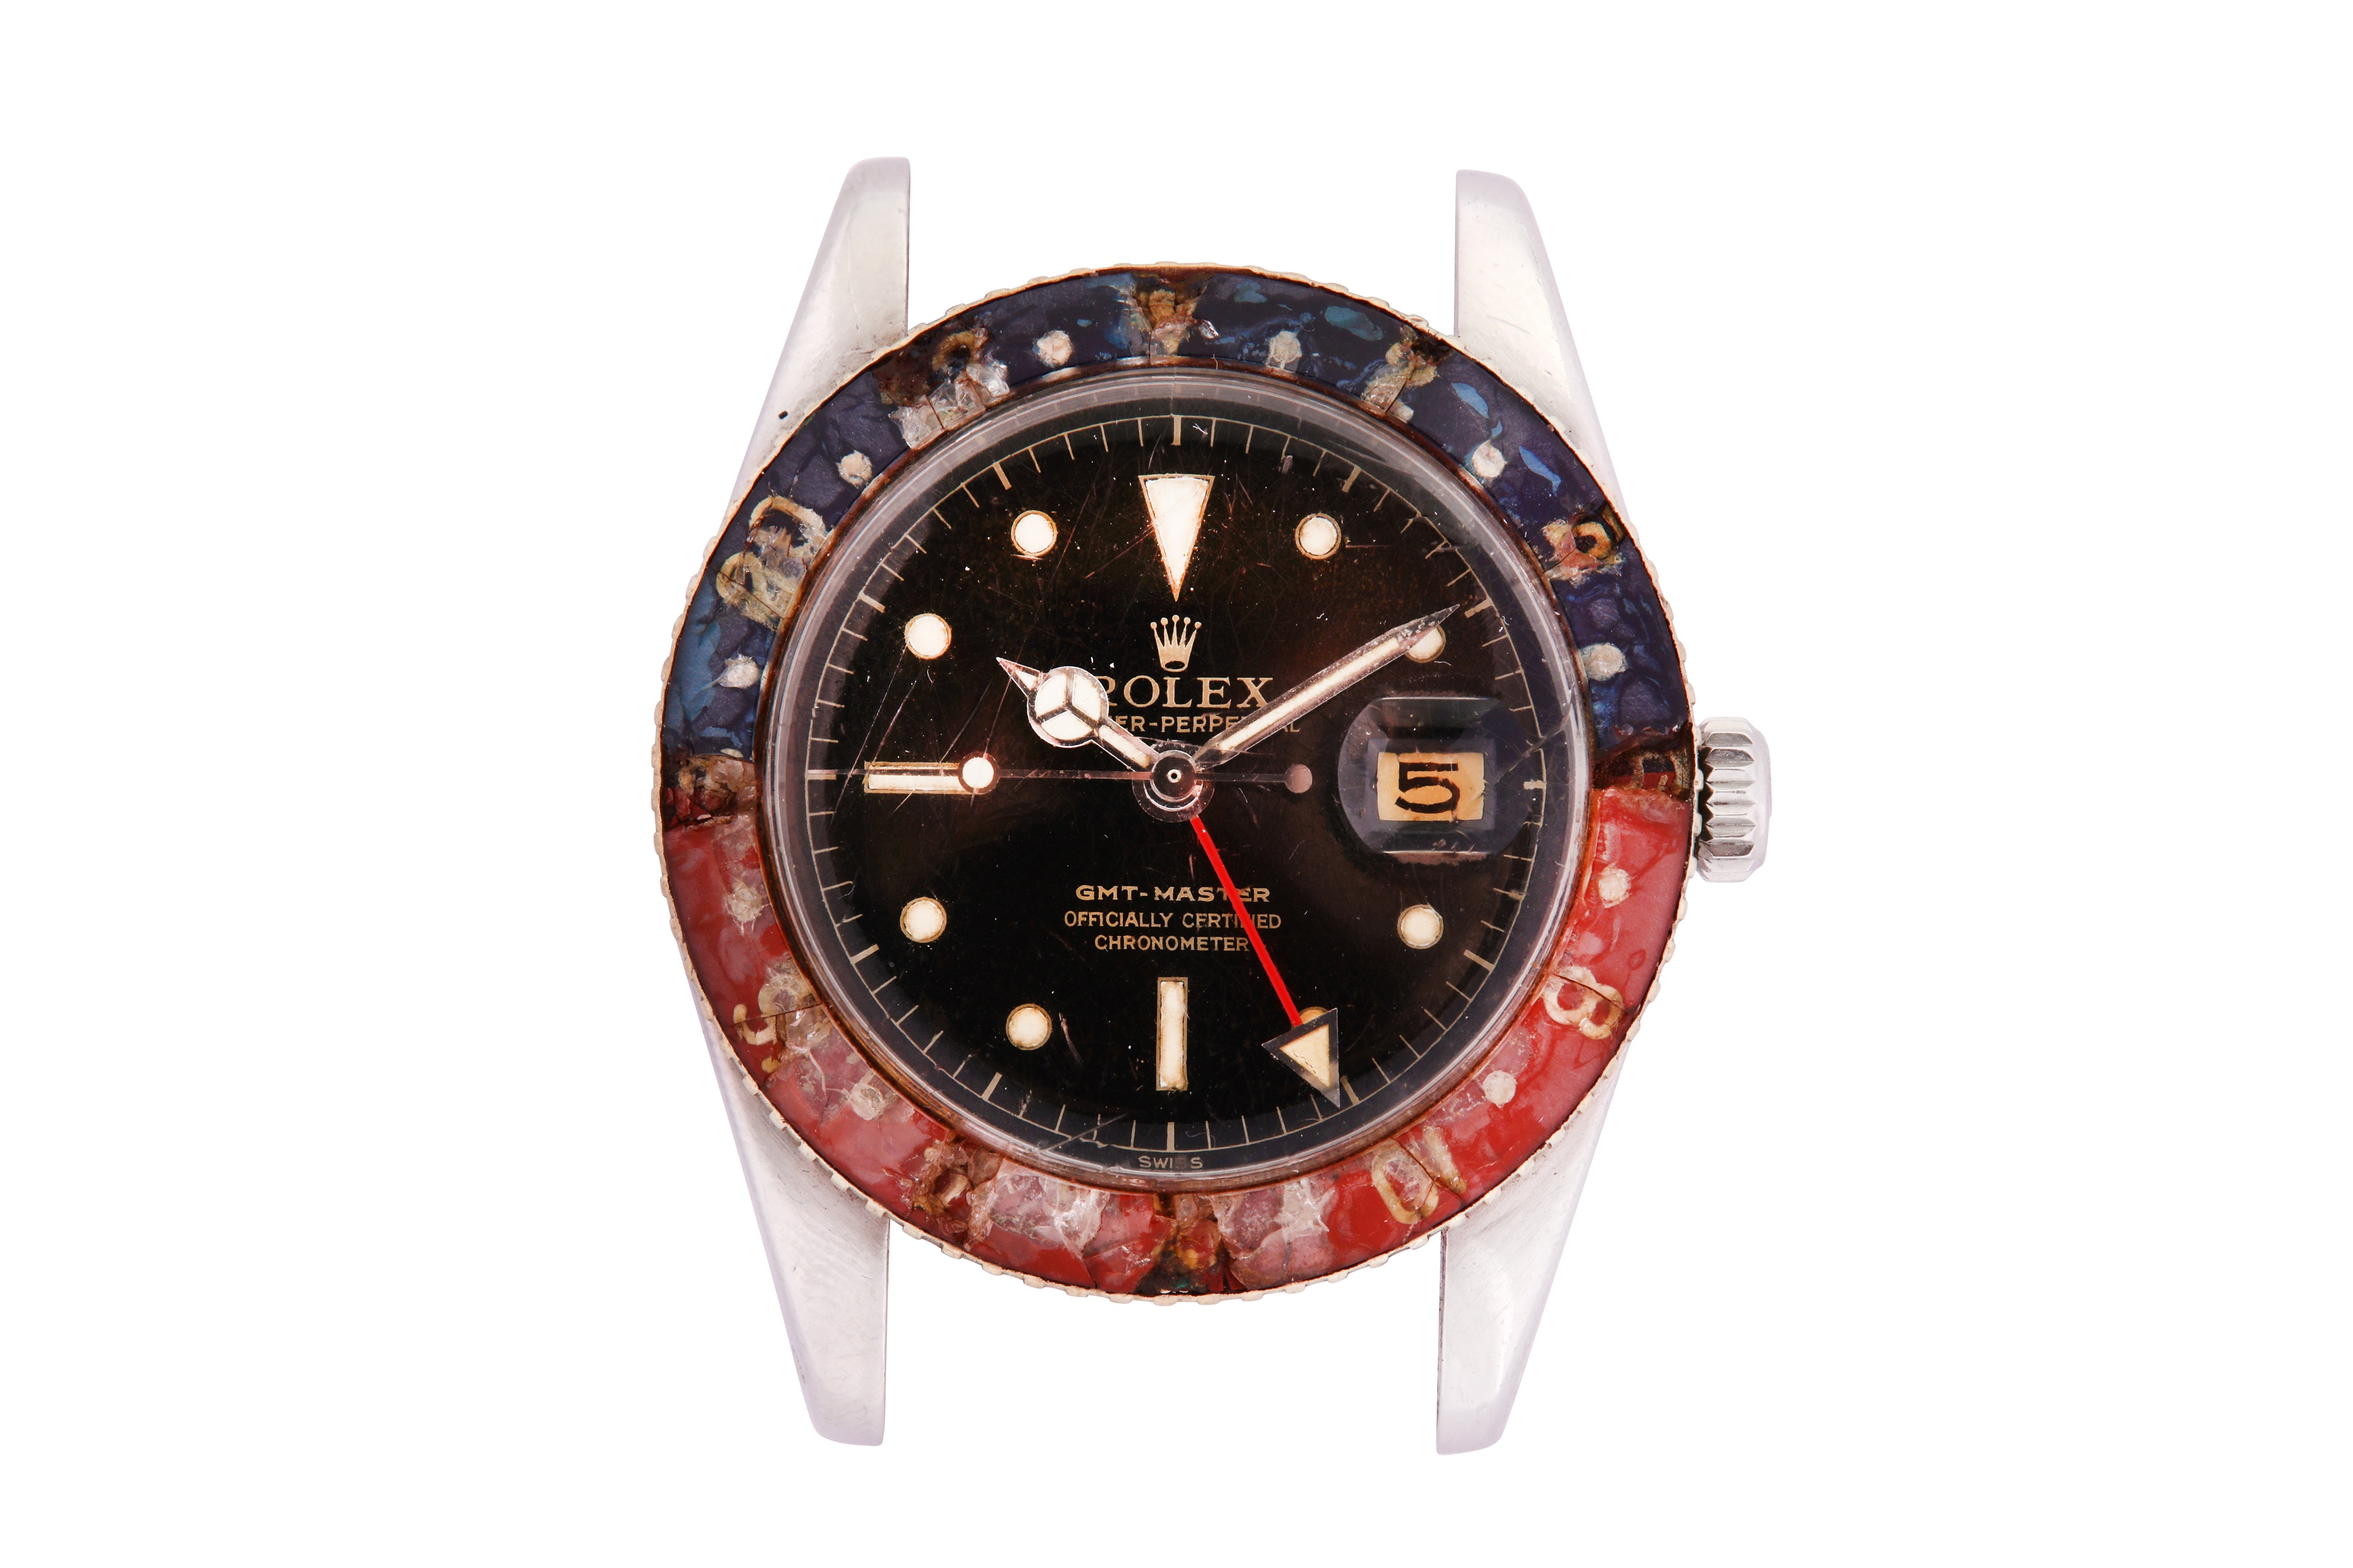 - WITHDRAWN - ROLEX. - Image 9 of 9